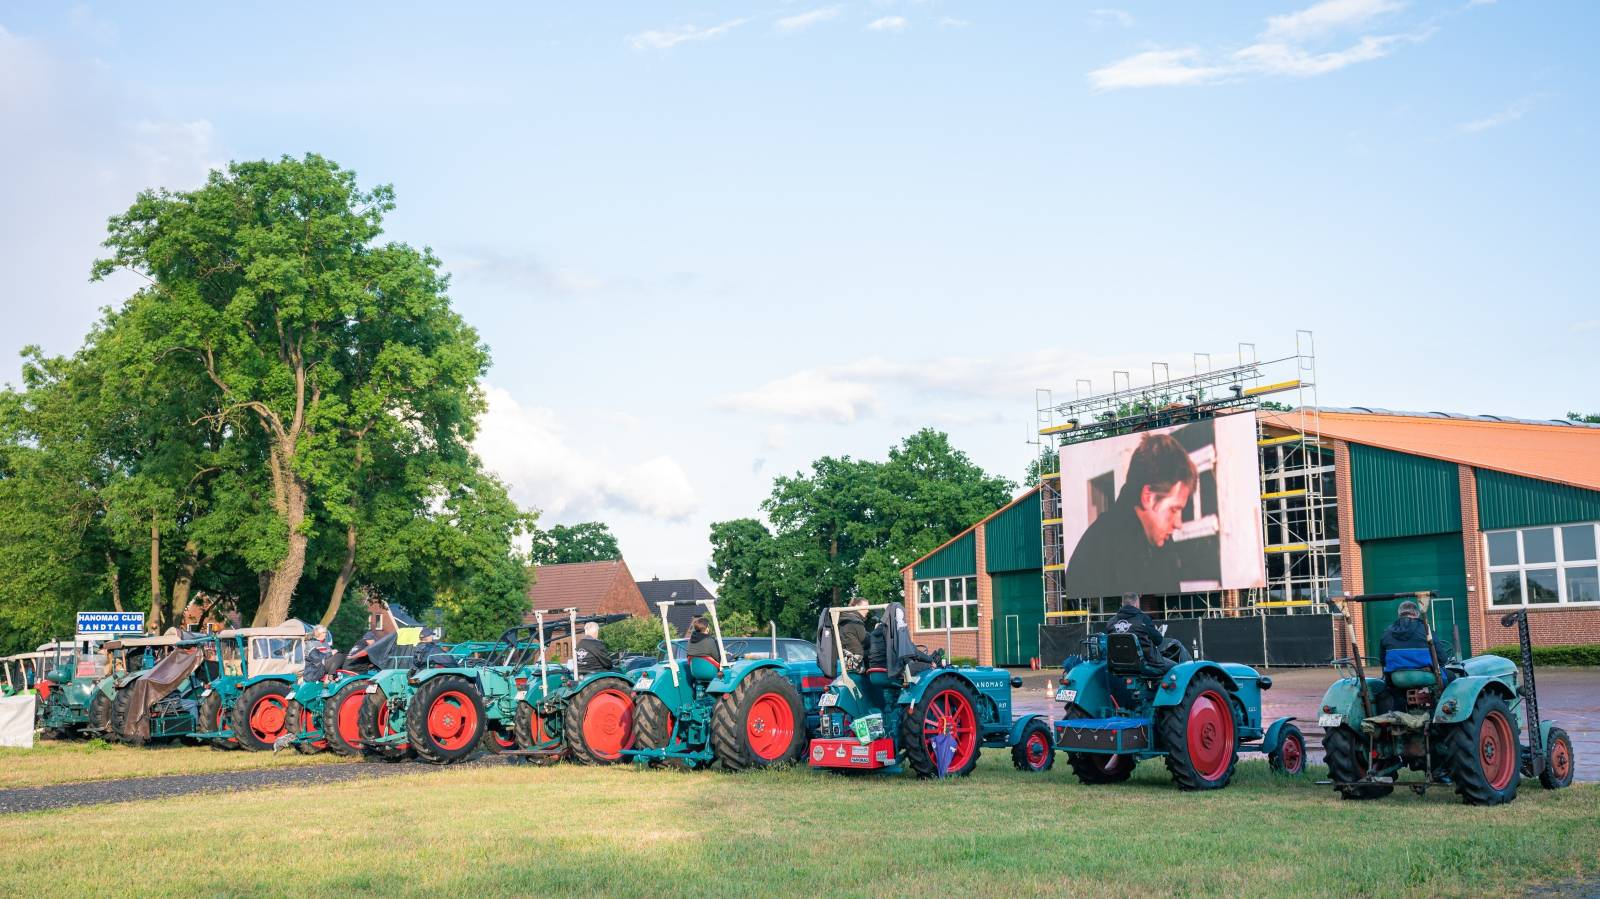 Cinema for tractor drivers